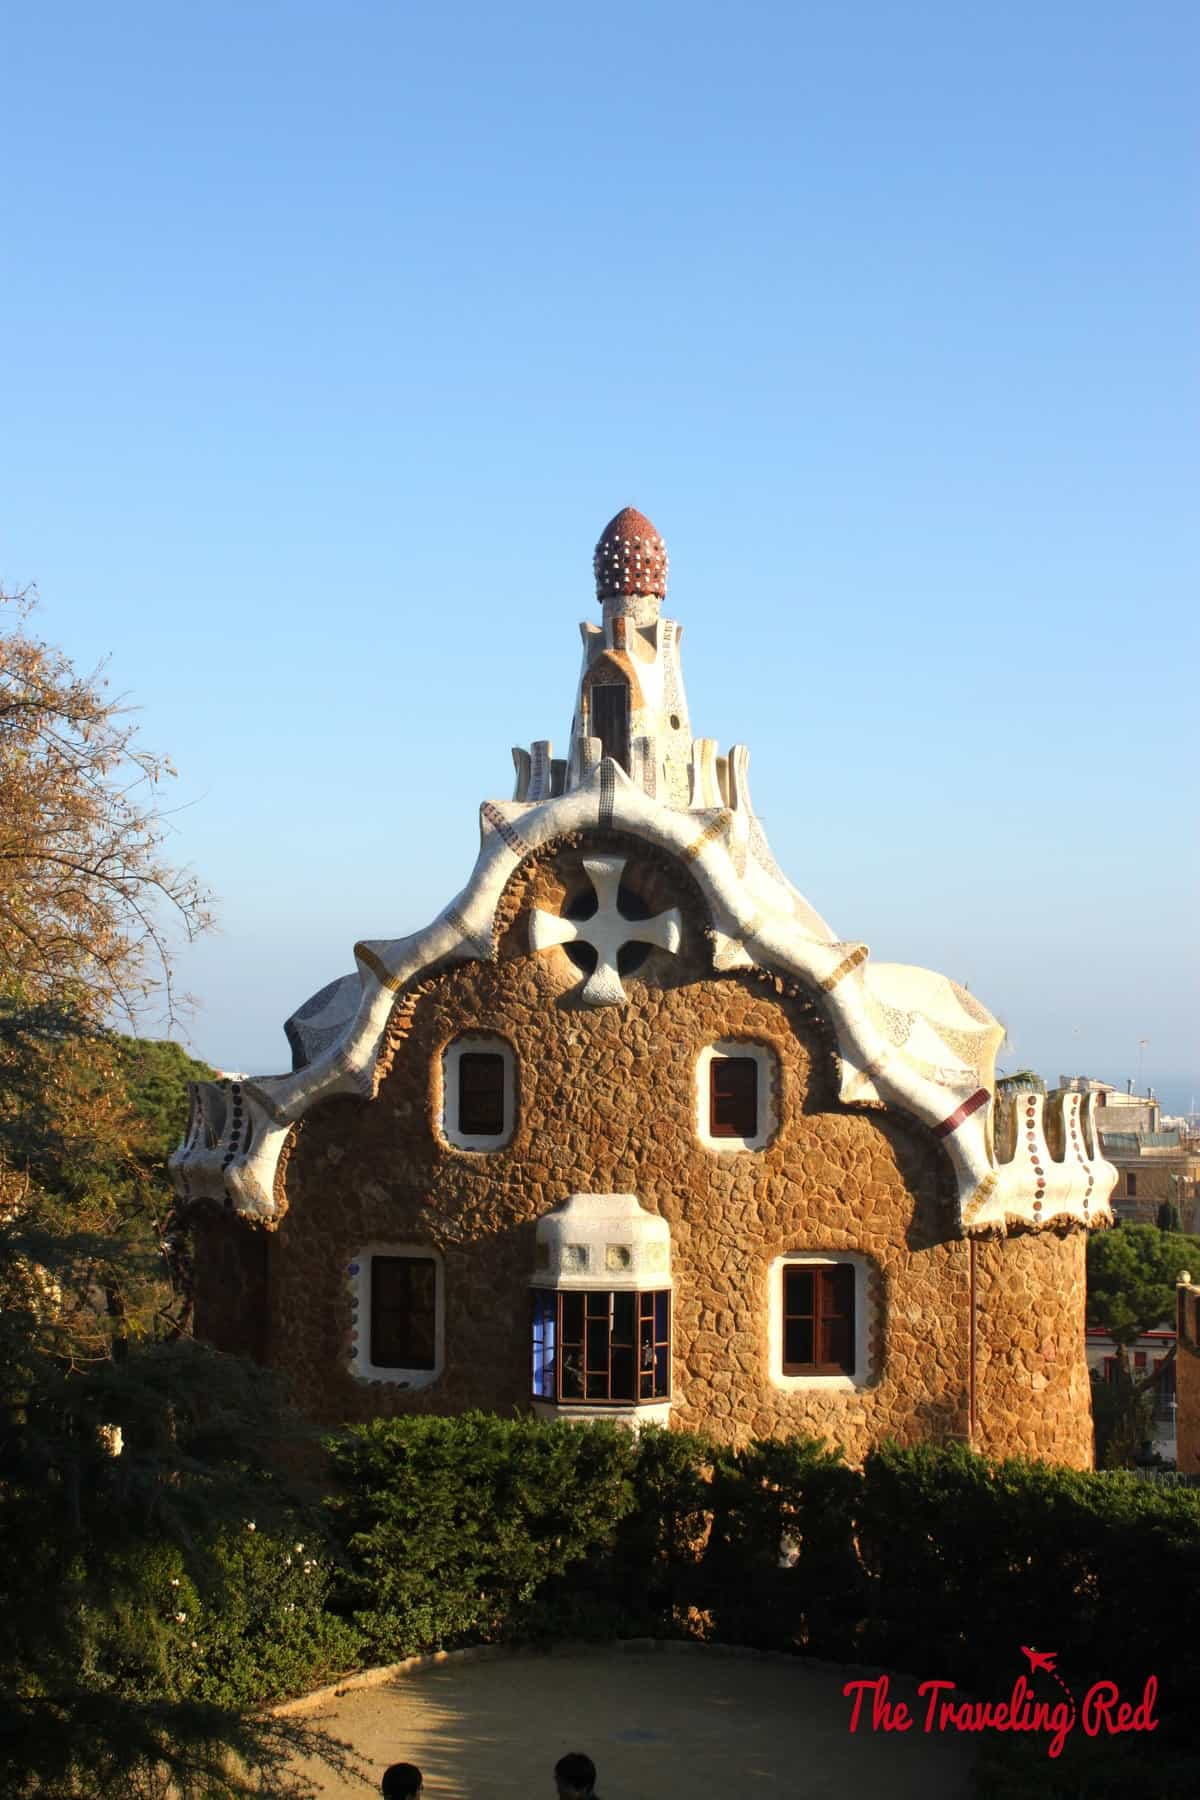 Barcelona, Spain is filled with works by AntoniGuadí. My favorites were the gingerbread house inspired buildings at the entrance of Parc Güell.